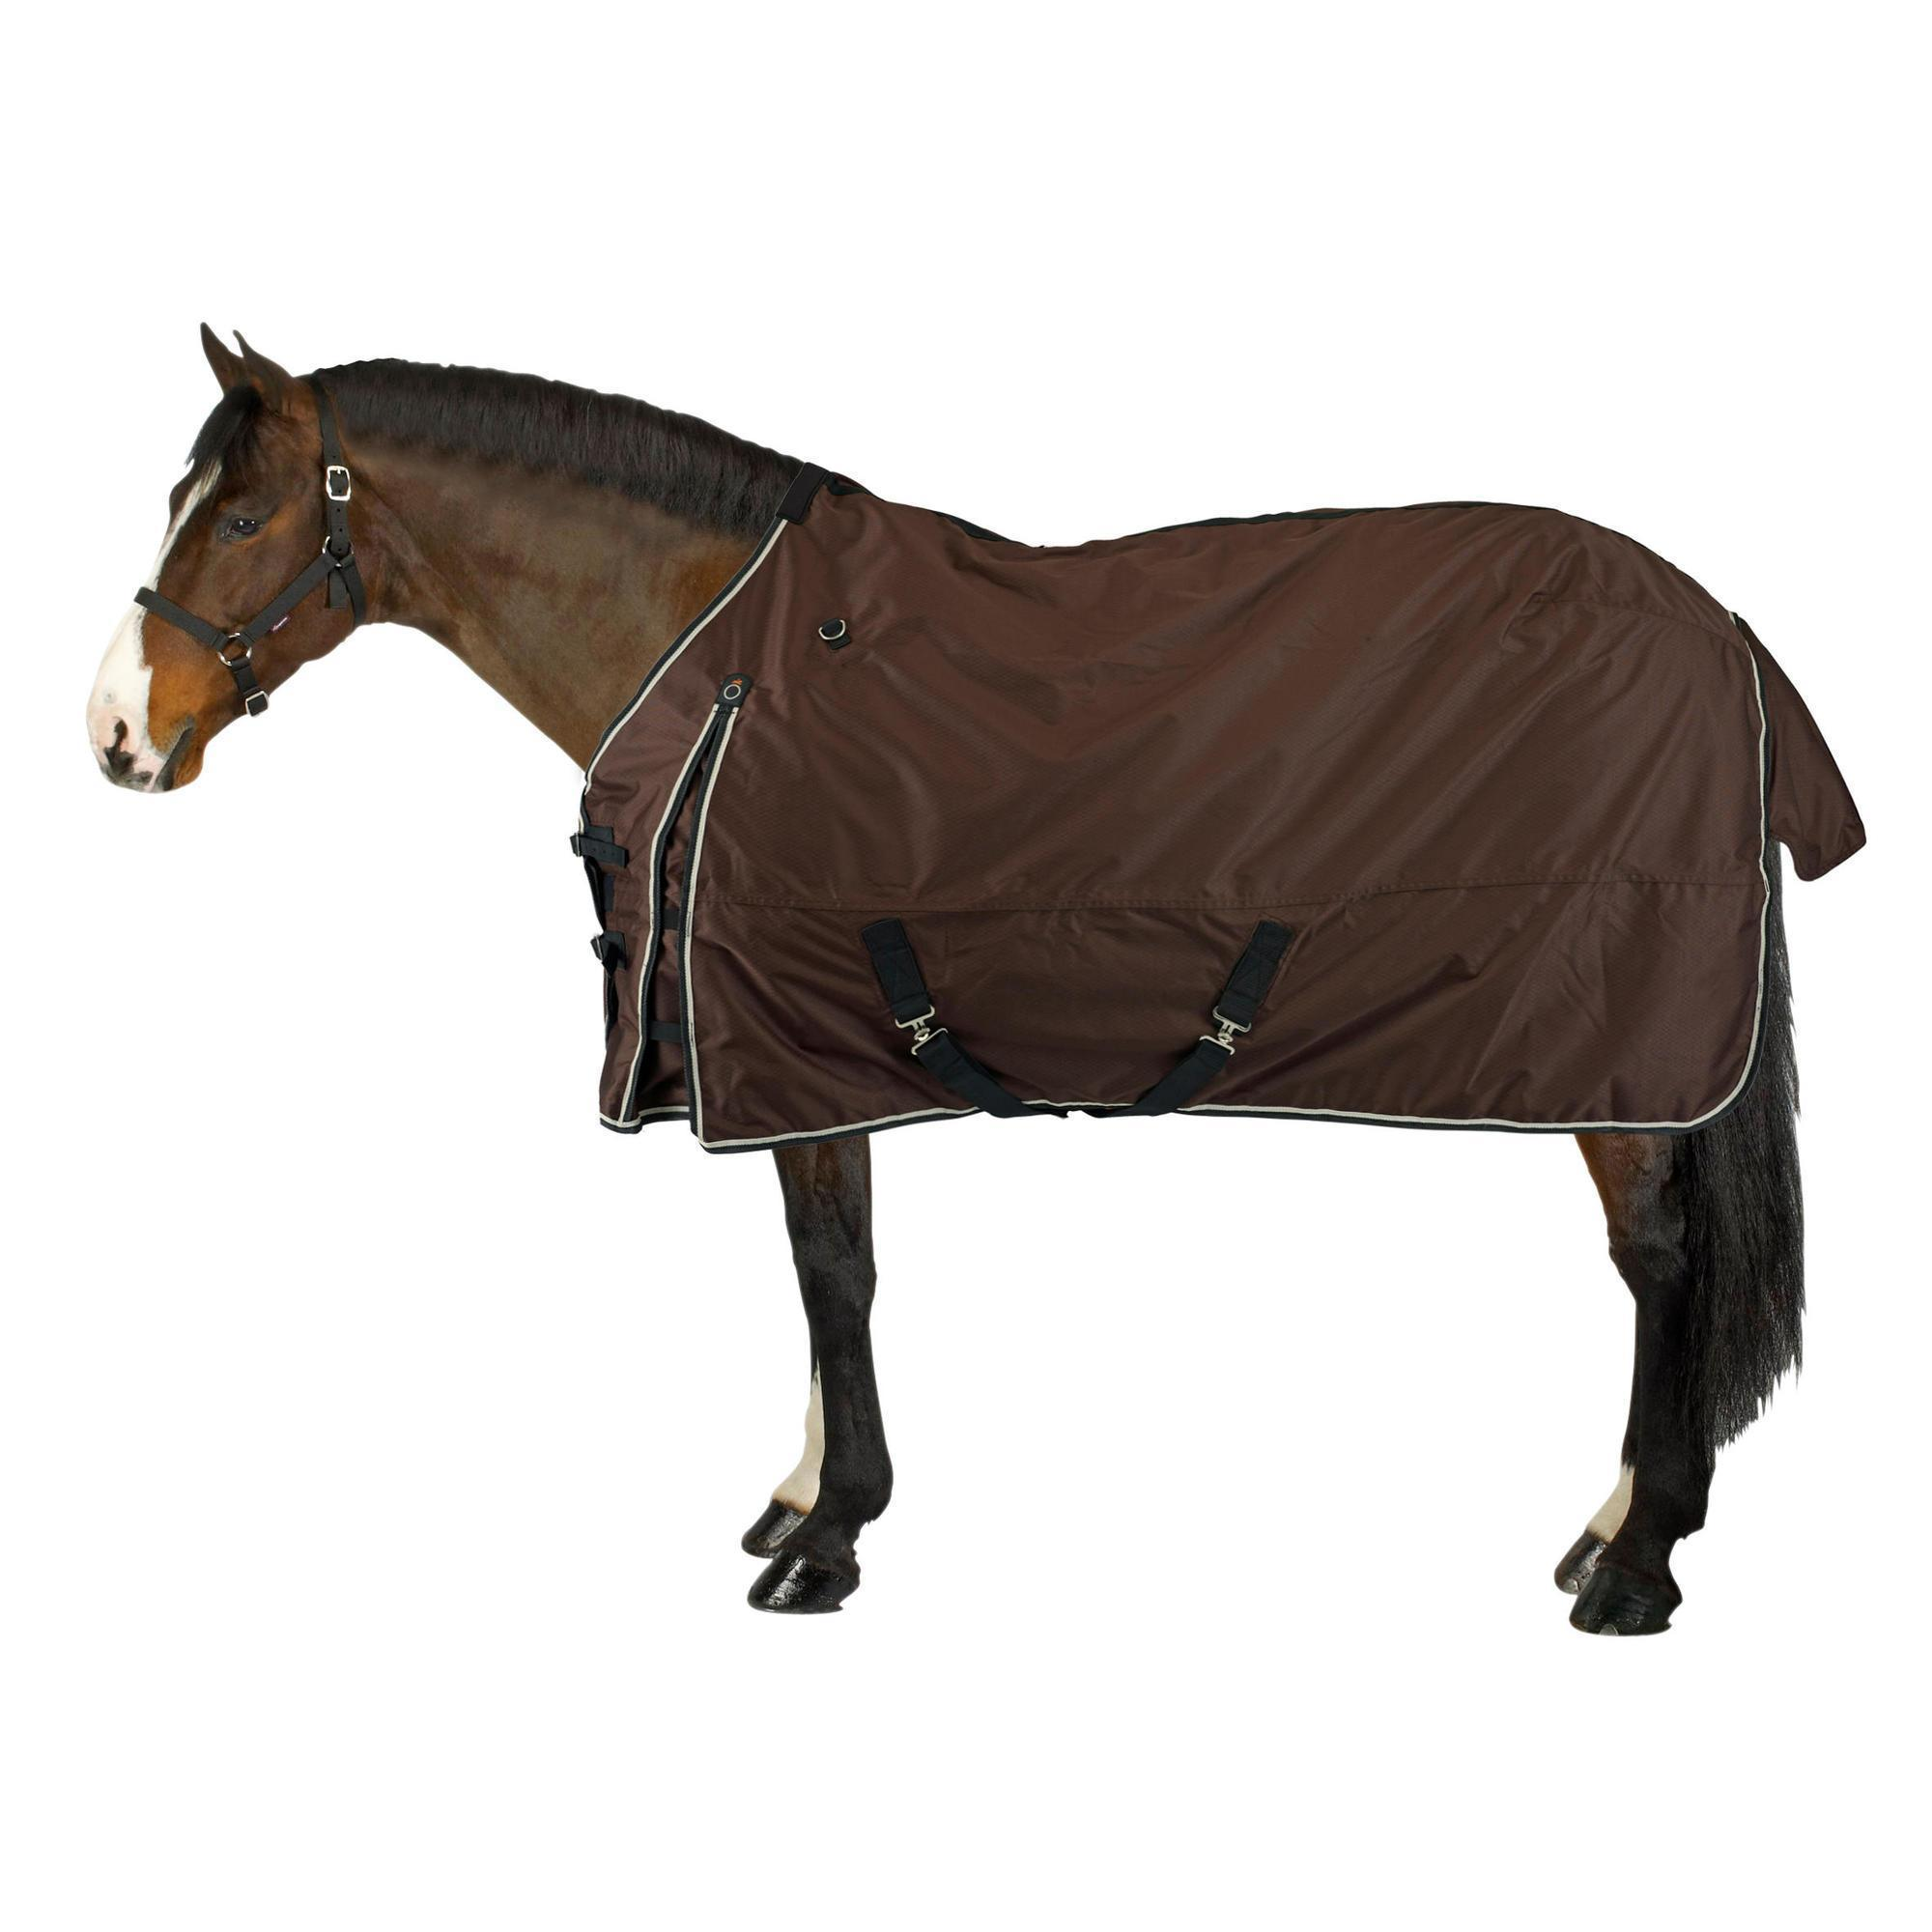 Chemise ext rieur imperm able quitation poney et cheval for Pouf exterieur impermeable